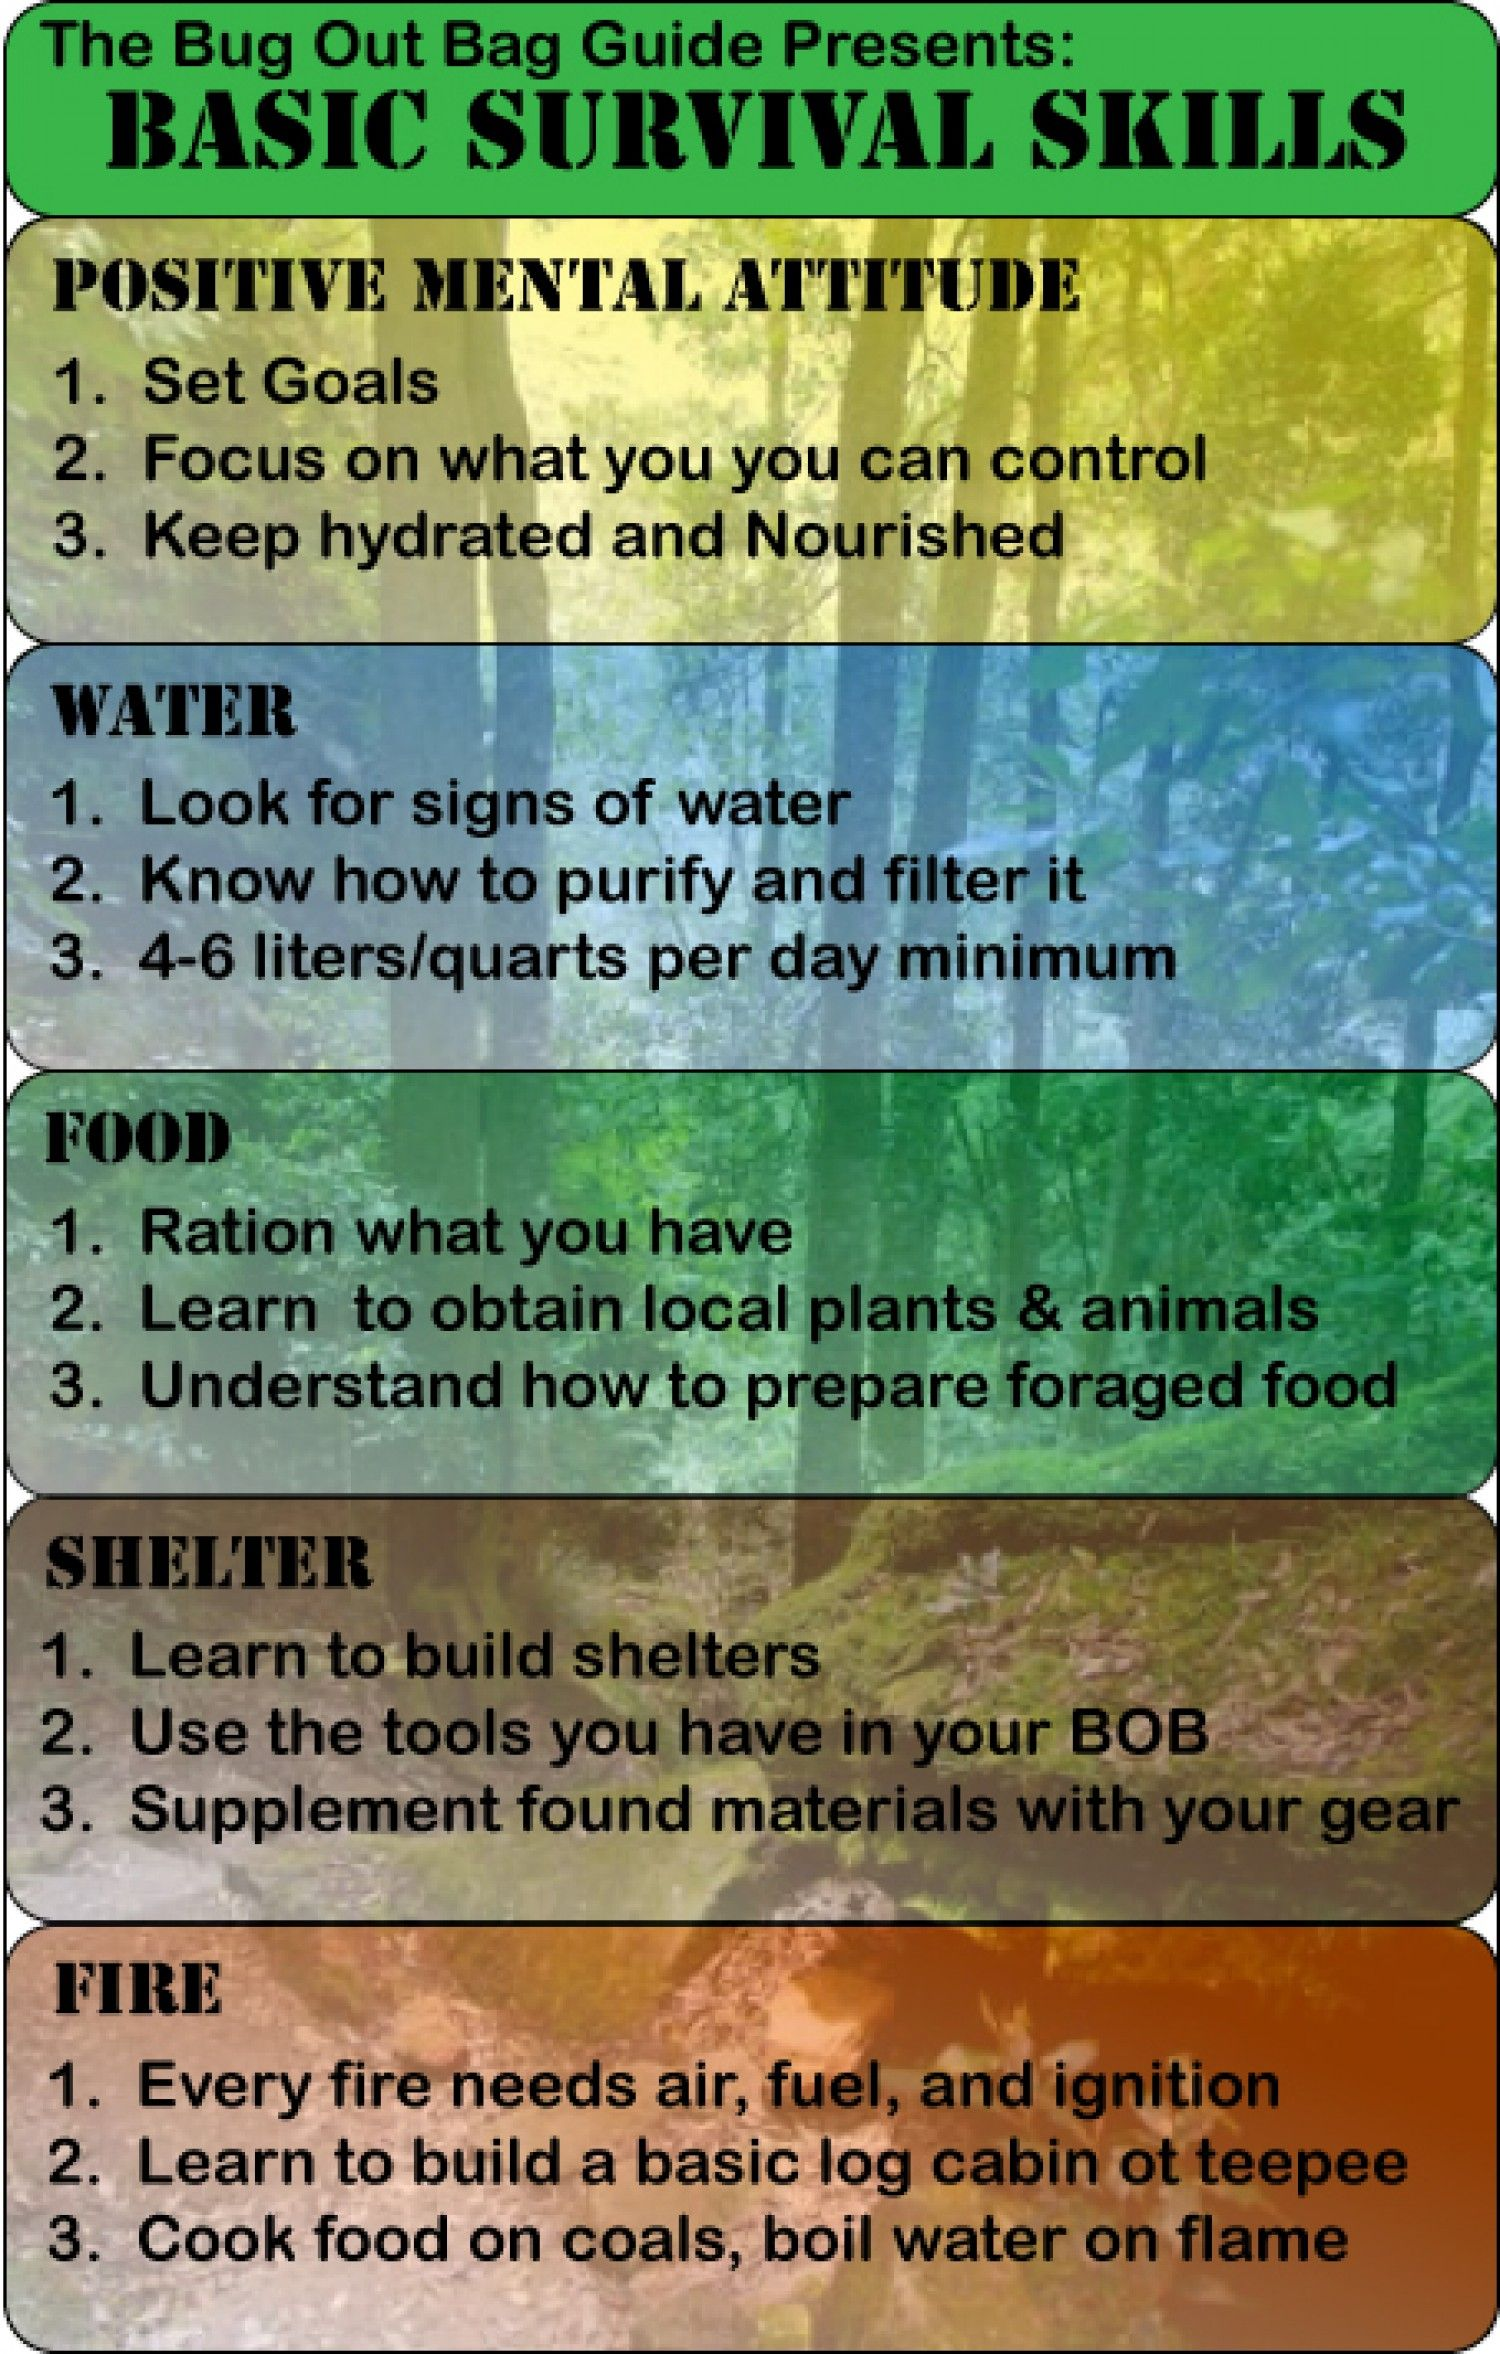 Bug Out Bag Essentials – Survival Tactics and Gear YOU Need to Survive Welcome To The Bug Out Bag Guide! http://www.thebugoutbagguide.com/